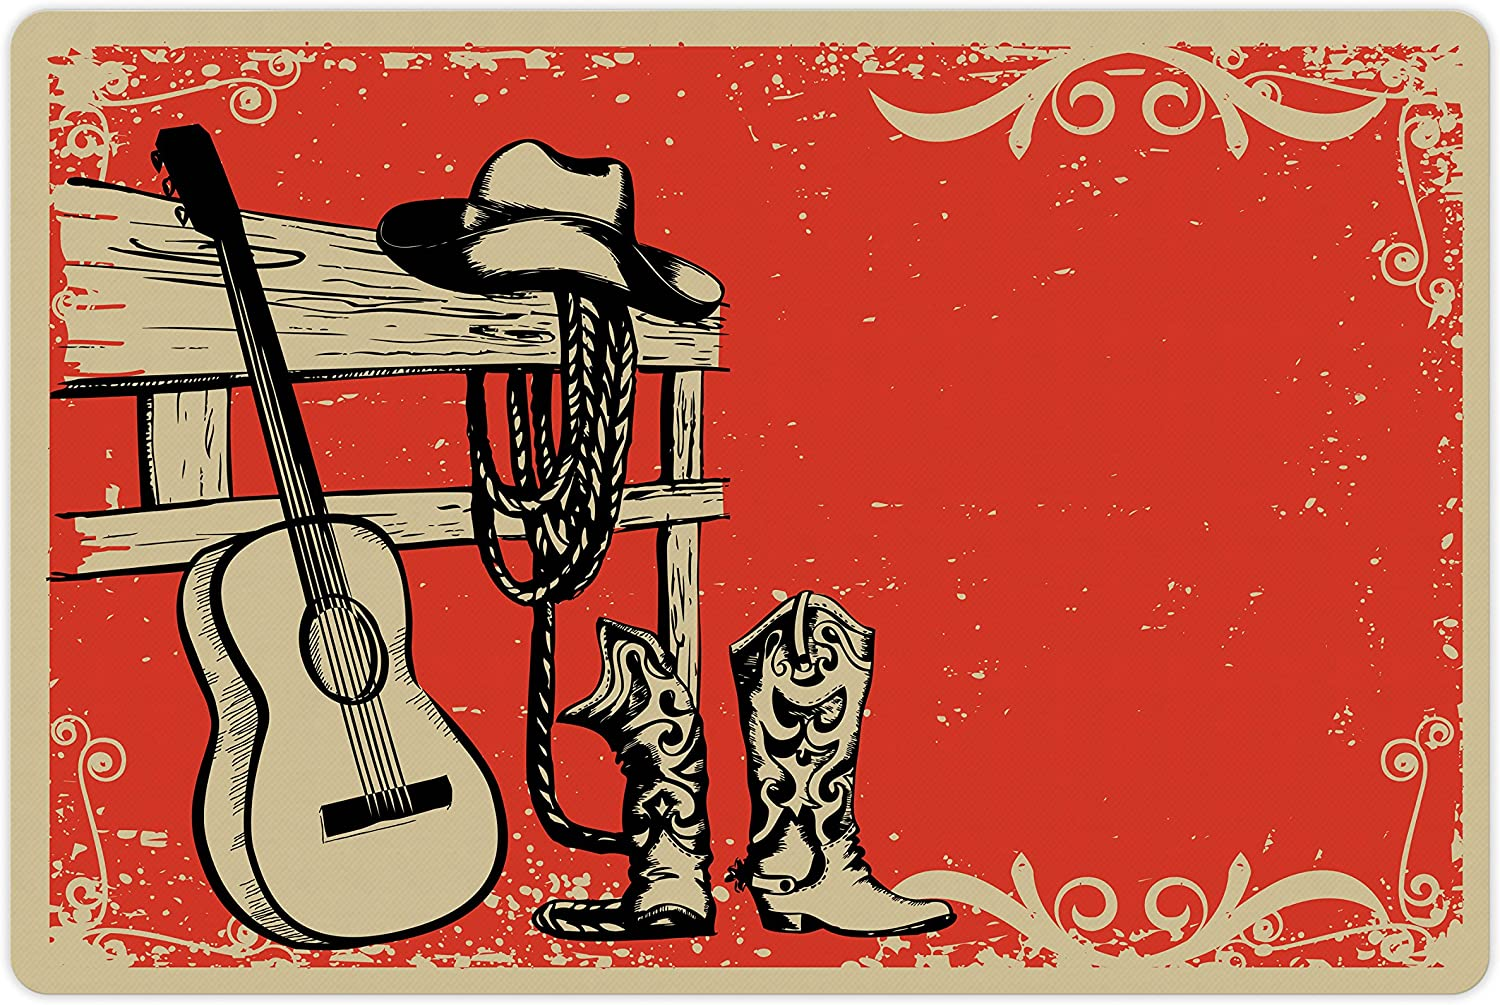 Ambesonne Western Pet Mat for Food and Water, Image of Wild West Elements with Country Music Guitar and Cowboy Boots Retro Art, Rectangle Non-Slip Rubber Mat for Dogs and Cats, Beige Orange